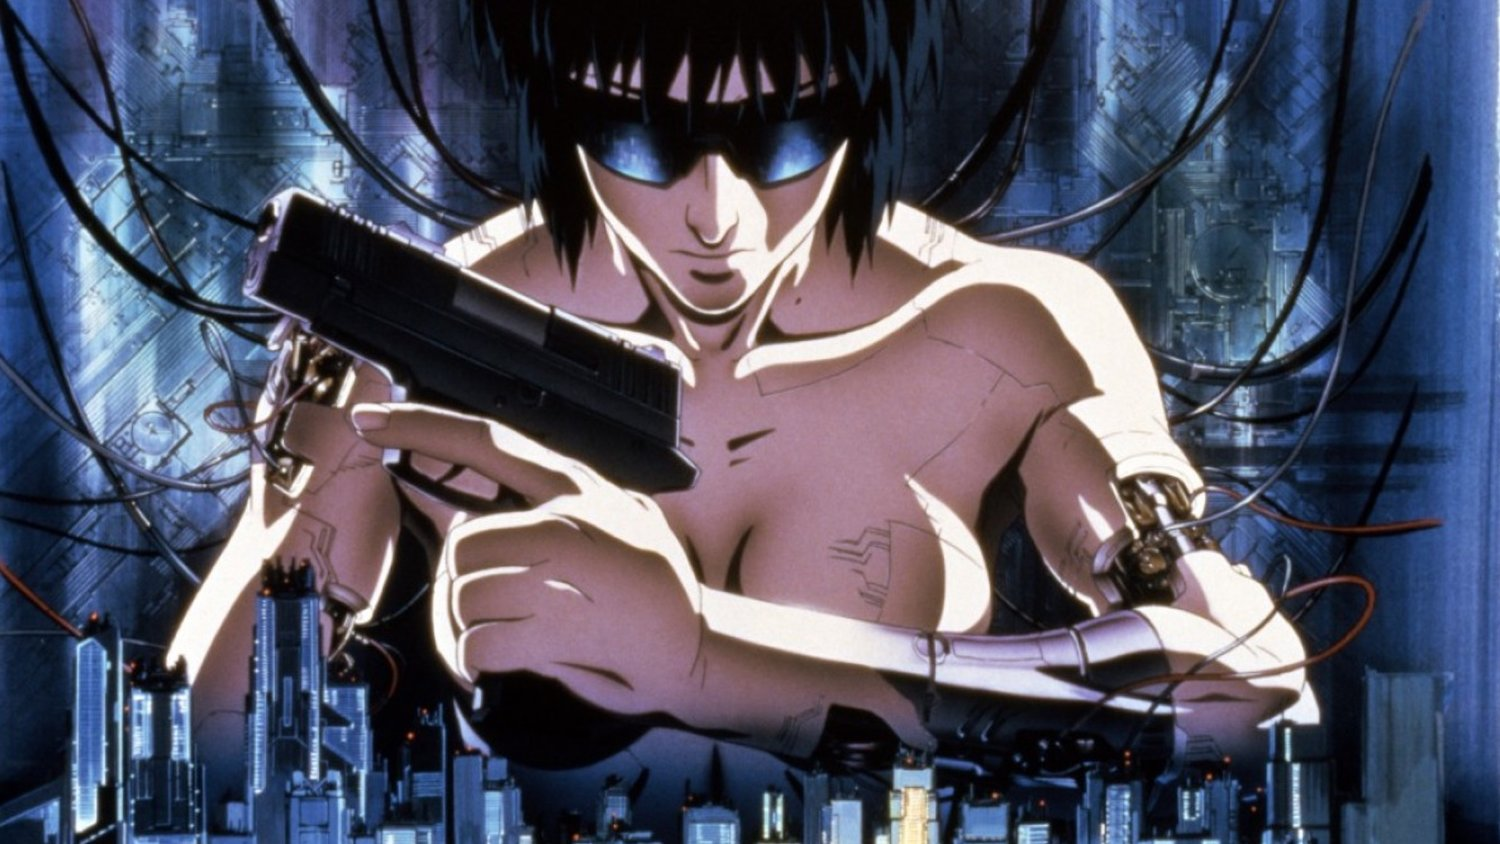 GHOST IN THE SHELL Video Infographic Takes Us Through a Brief History of the Franchise